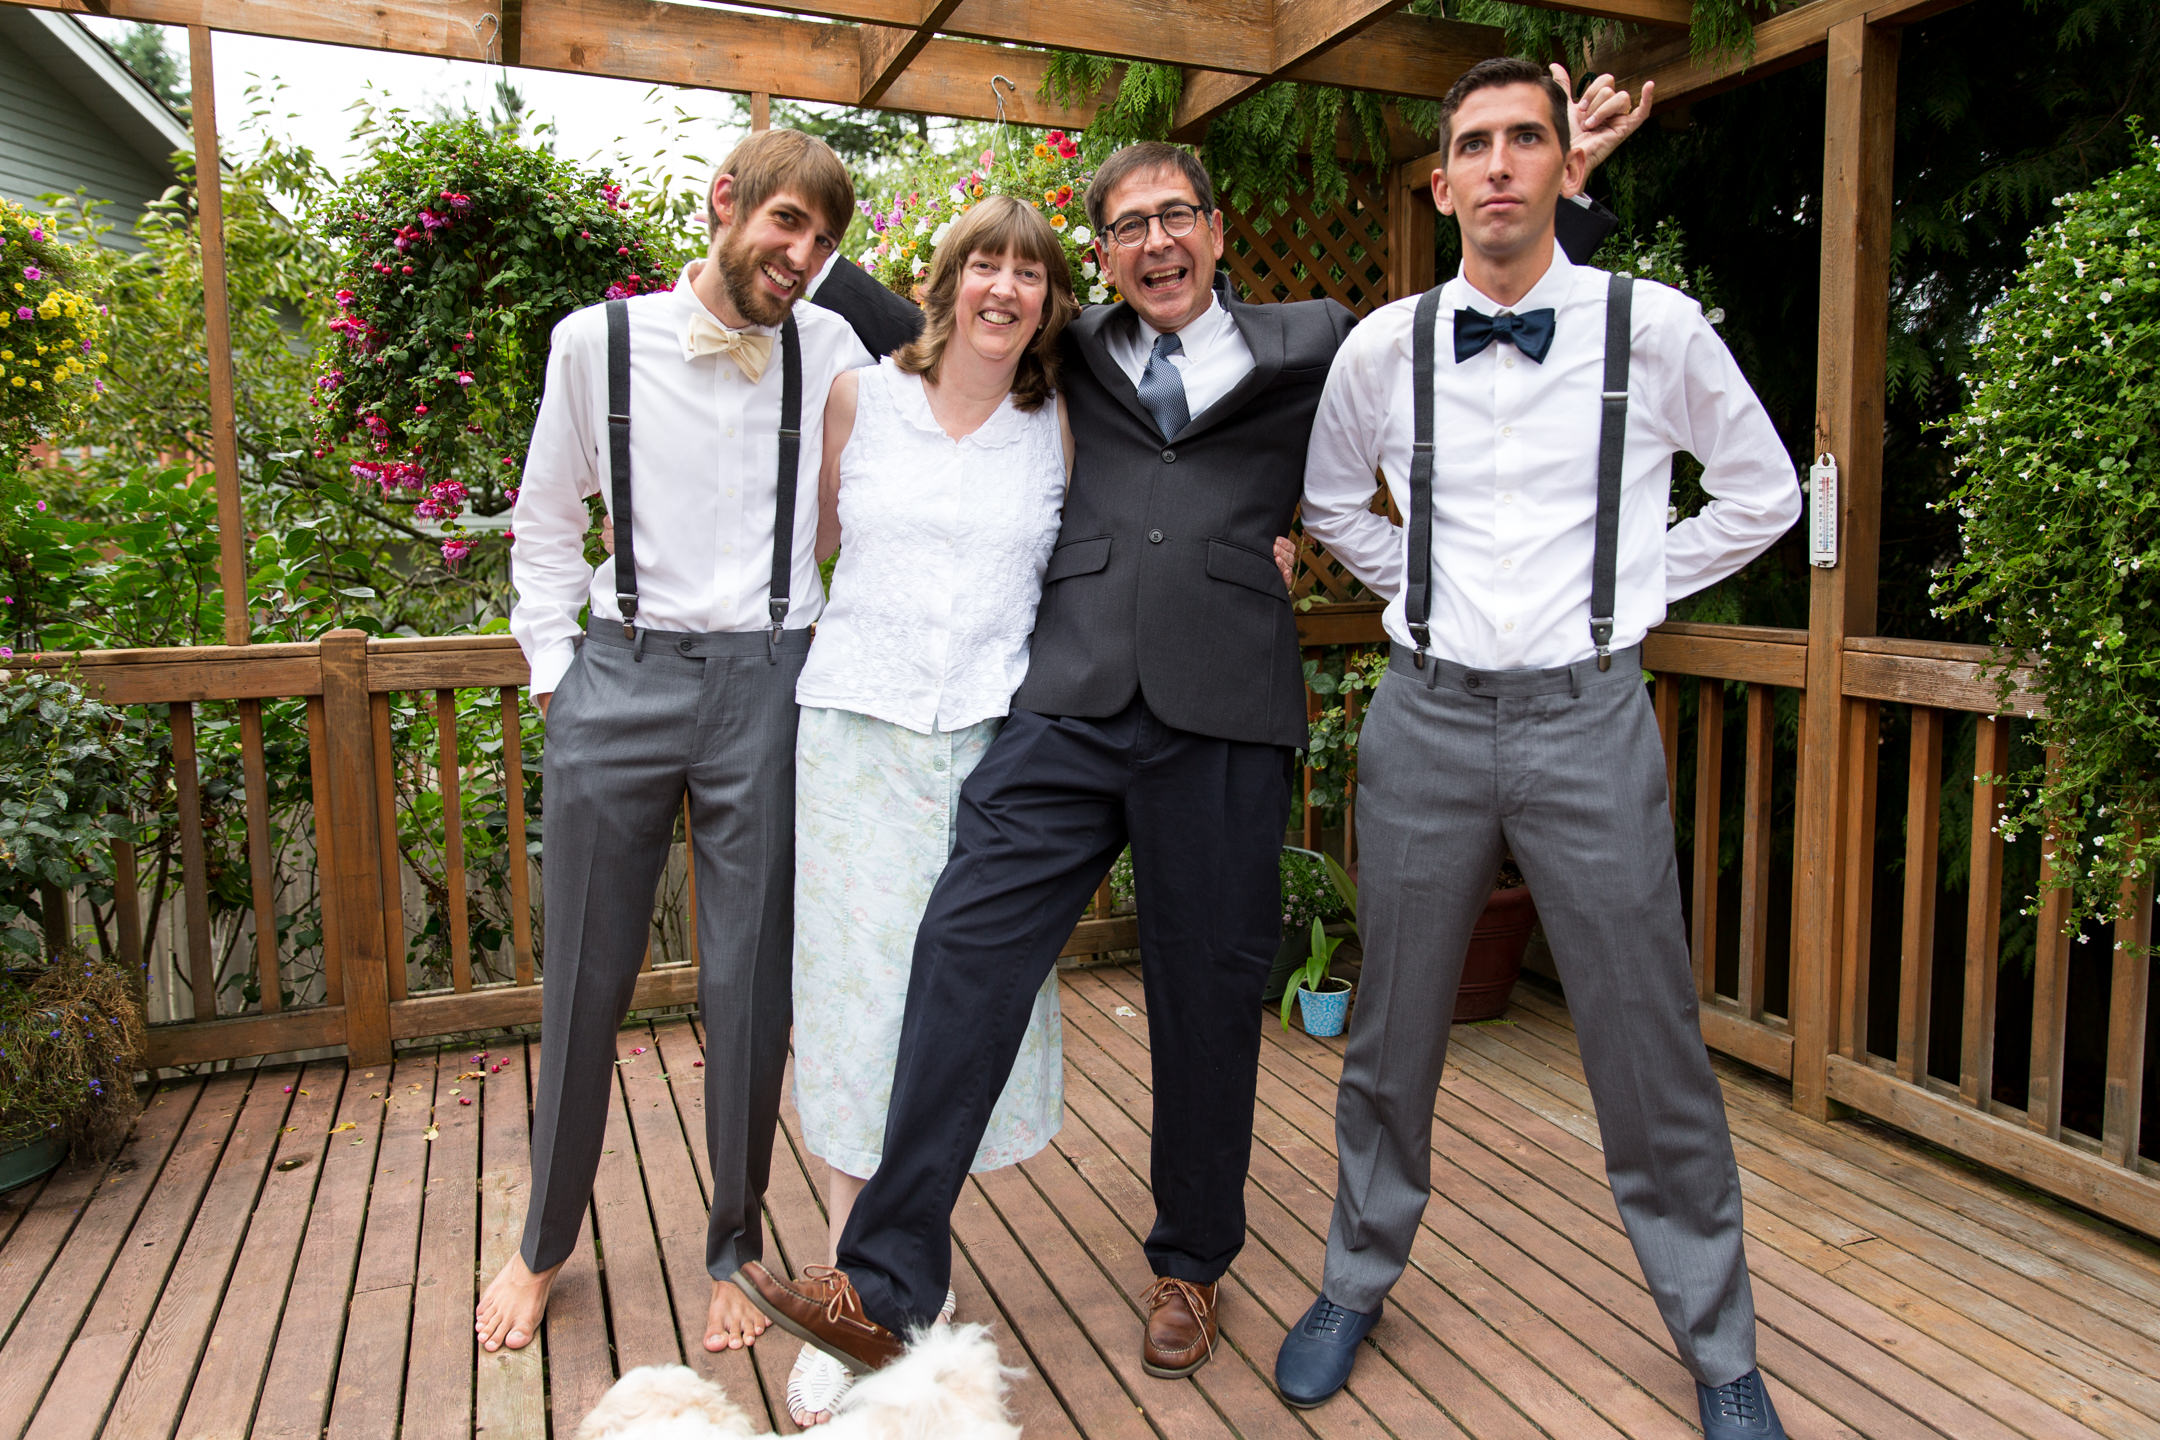 20150913_Tat_Anna and Anders Wedding-13.jpg